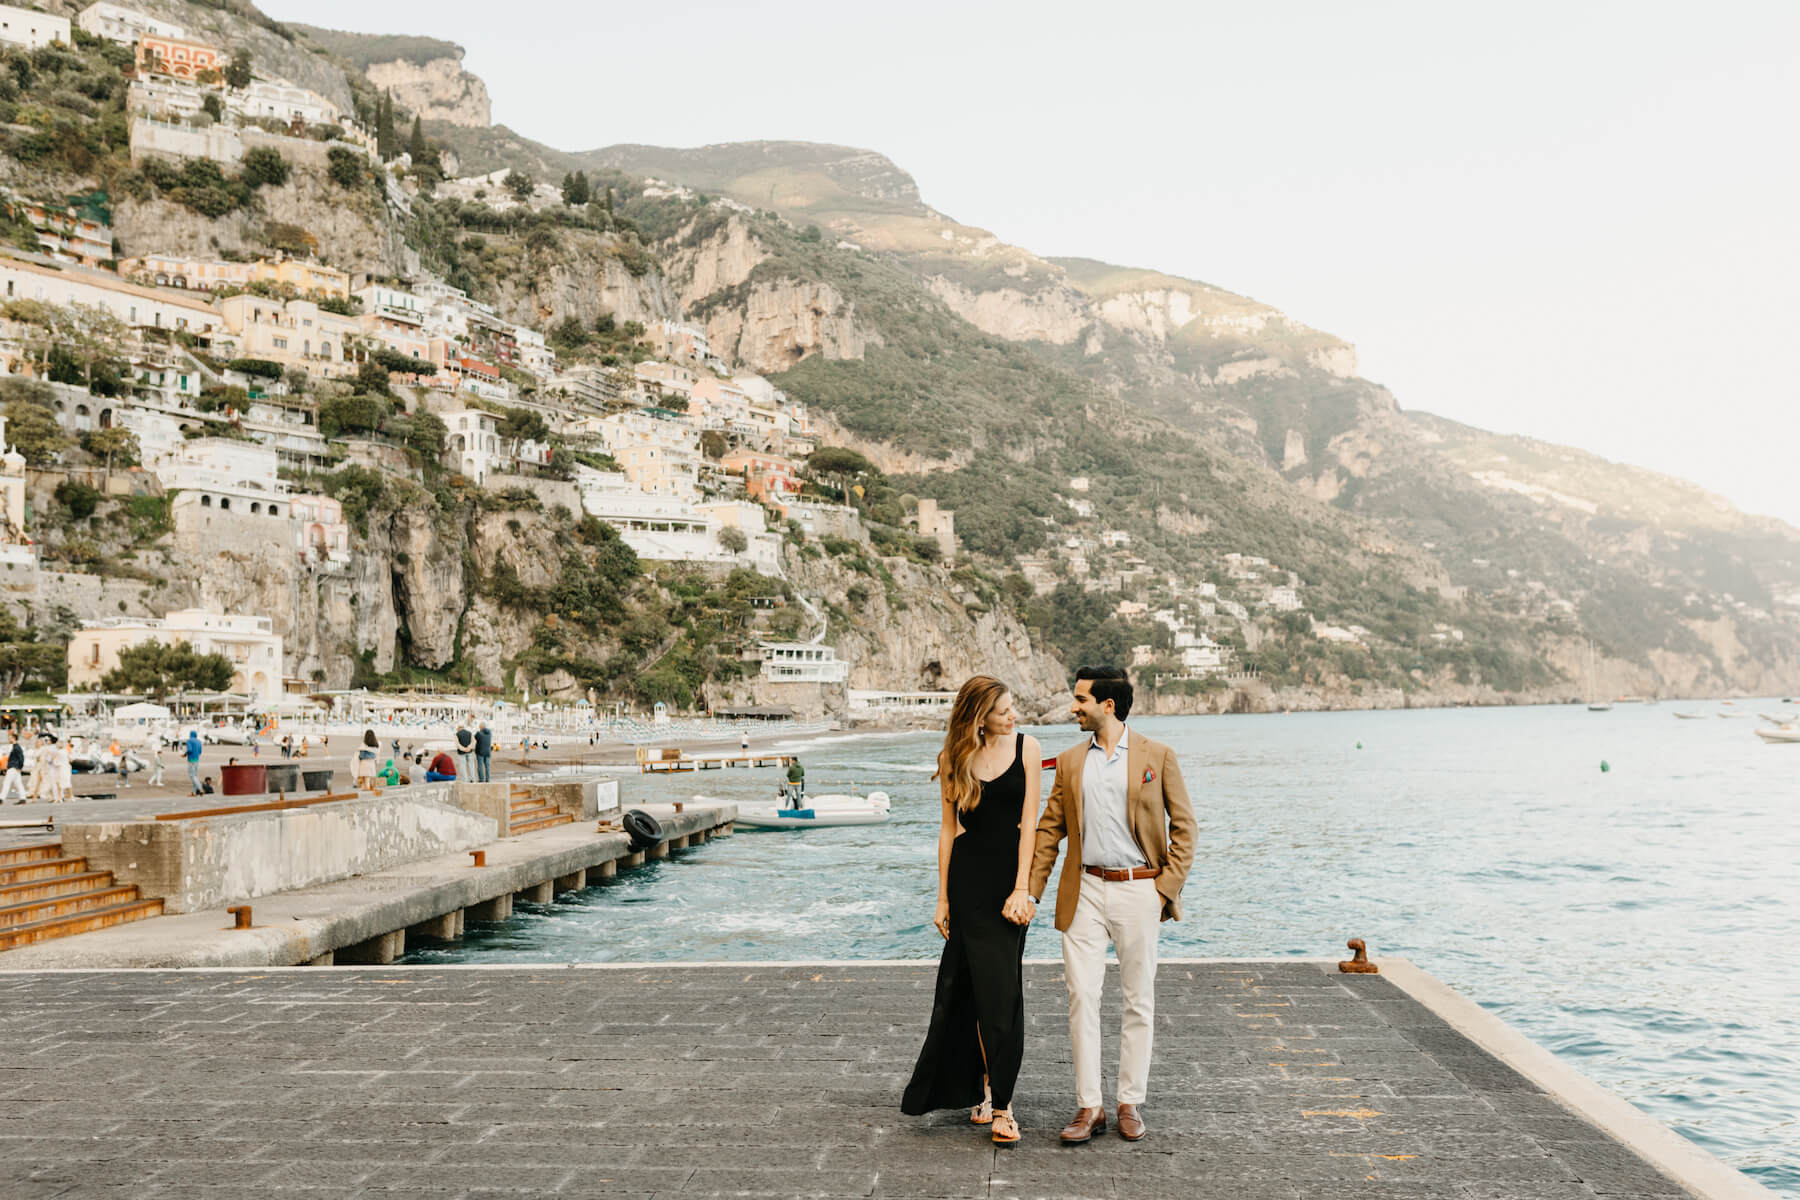 couple holding hands and walking on the beach in Positano, Italy